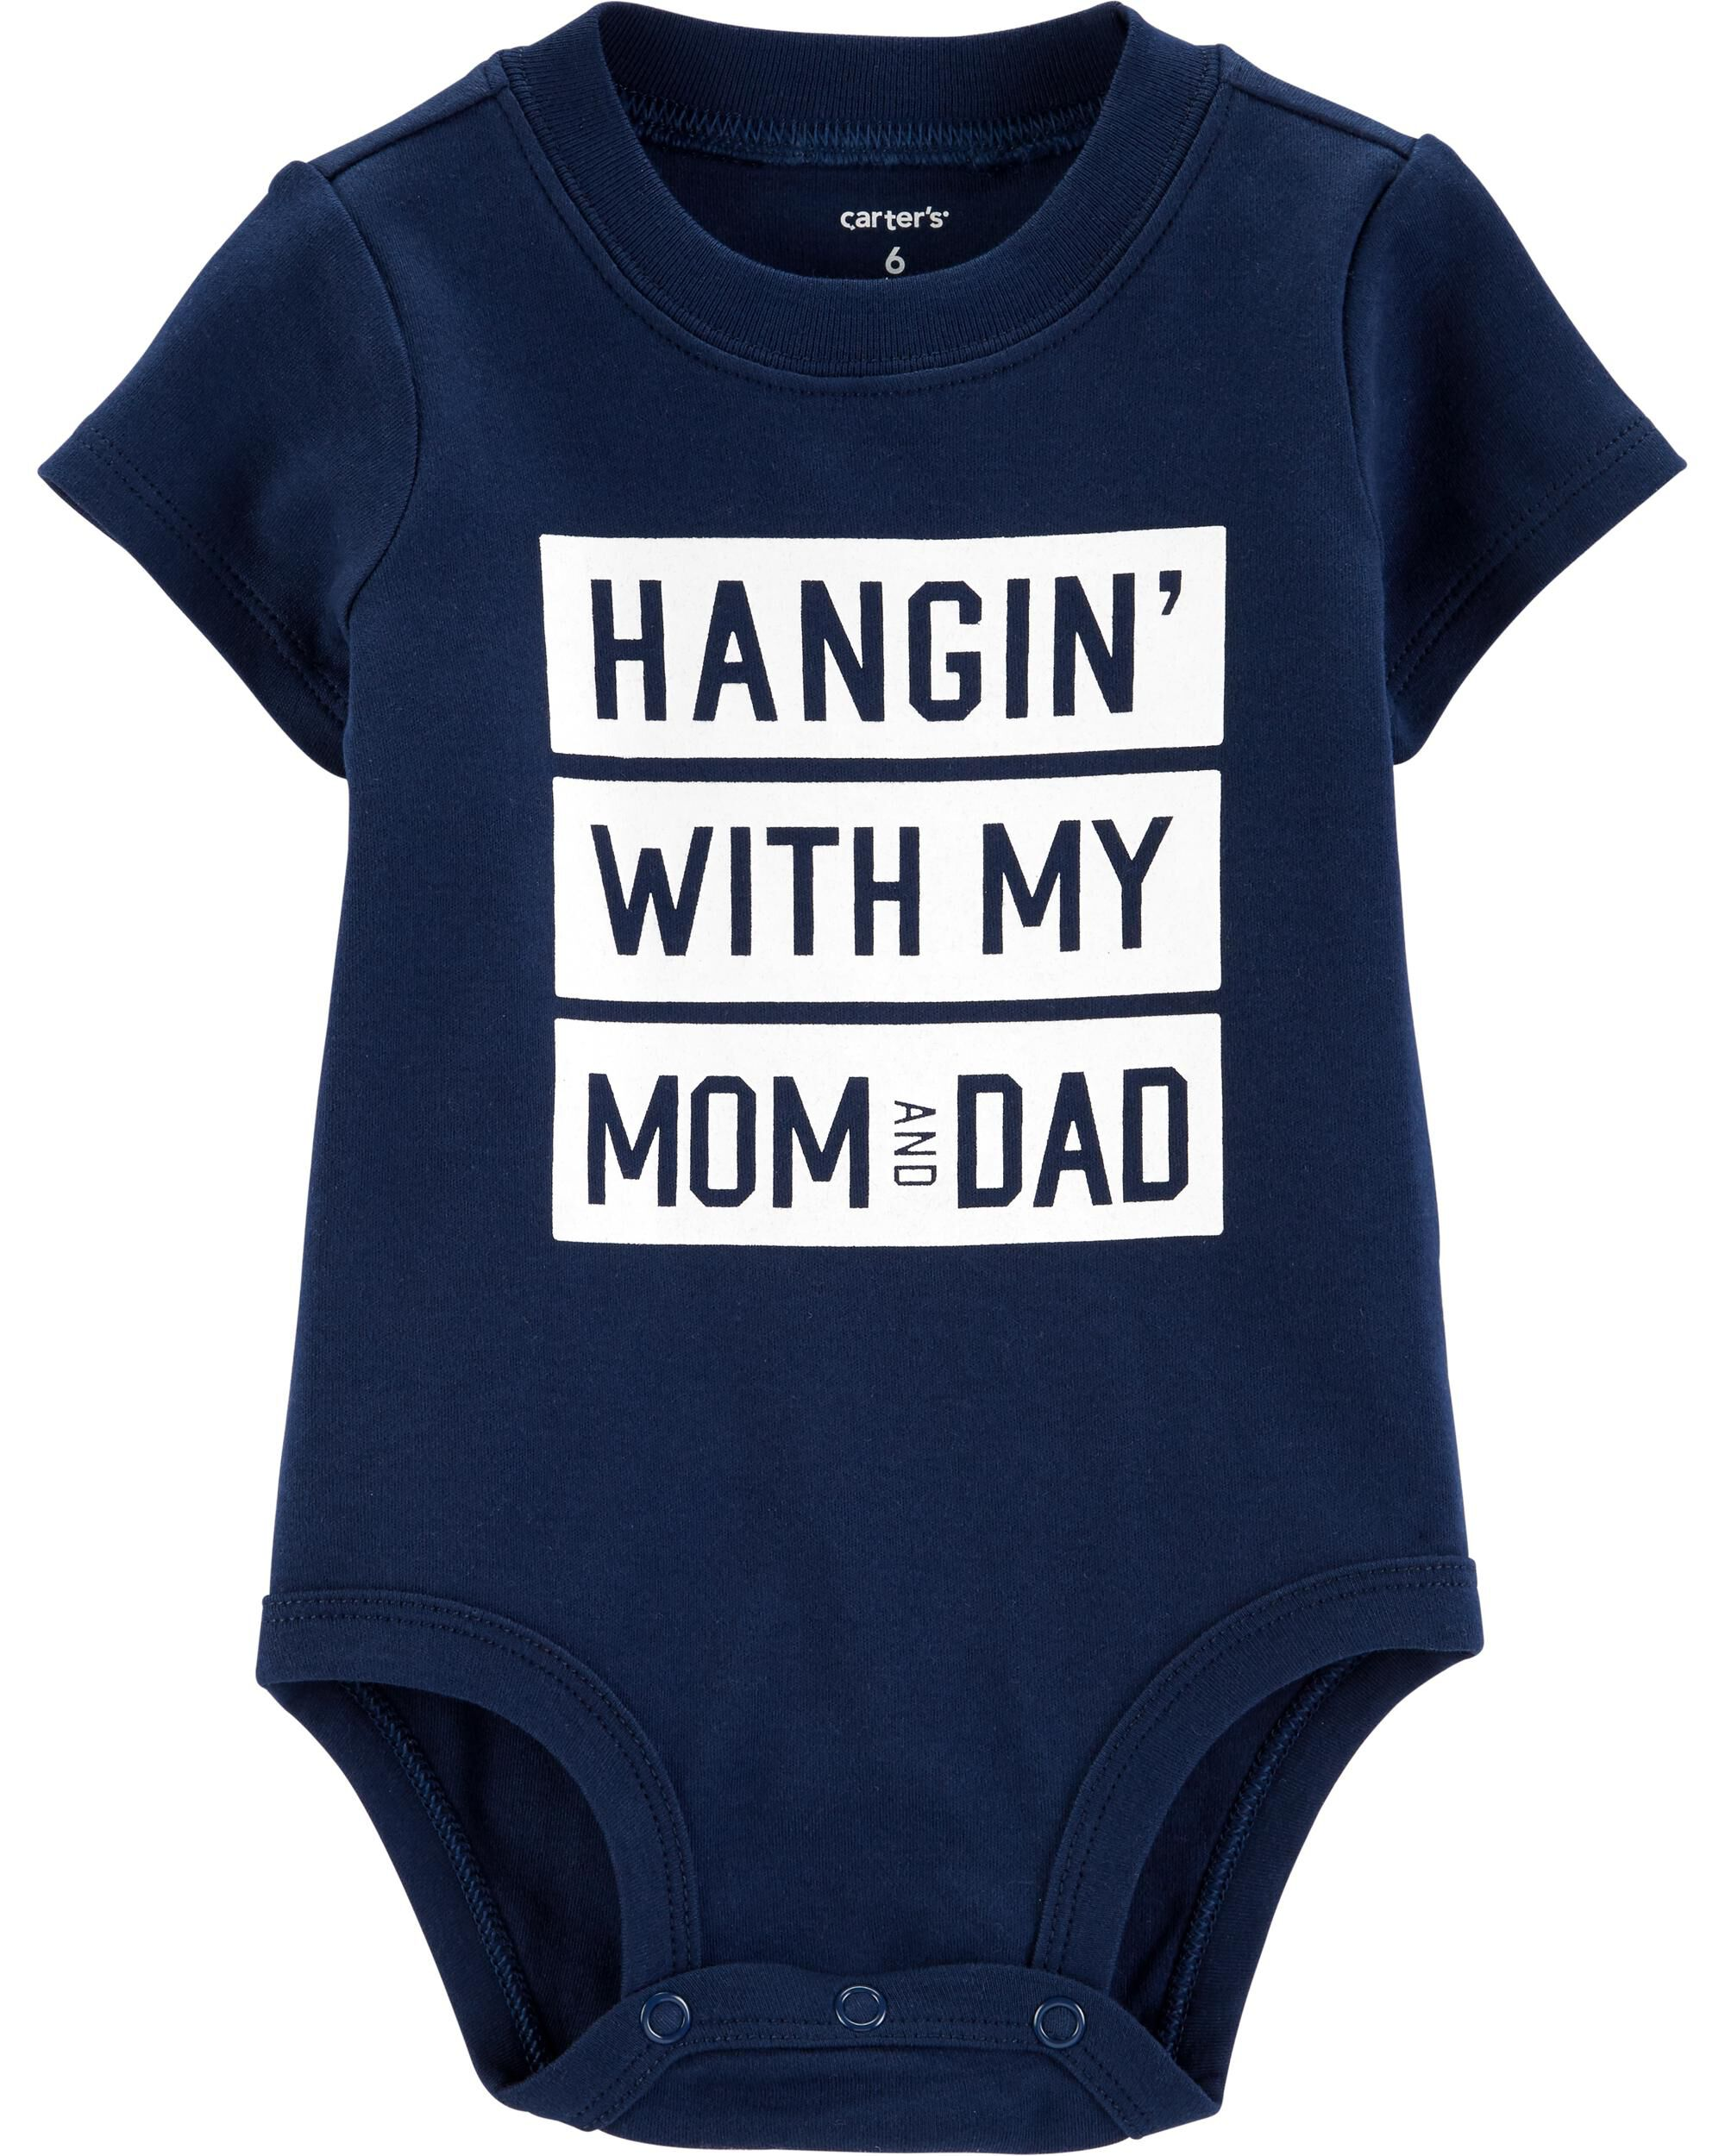 348ba2e77 Mom & Dad Collectible Bodysuit. Loading zoom